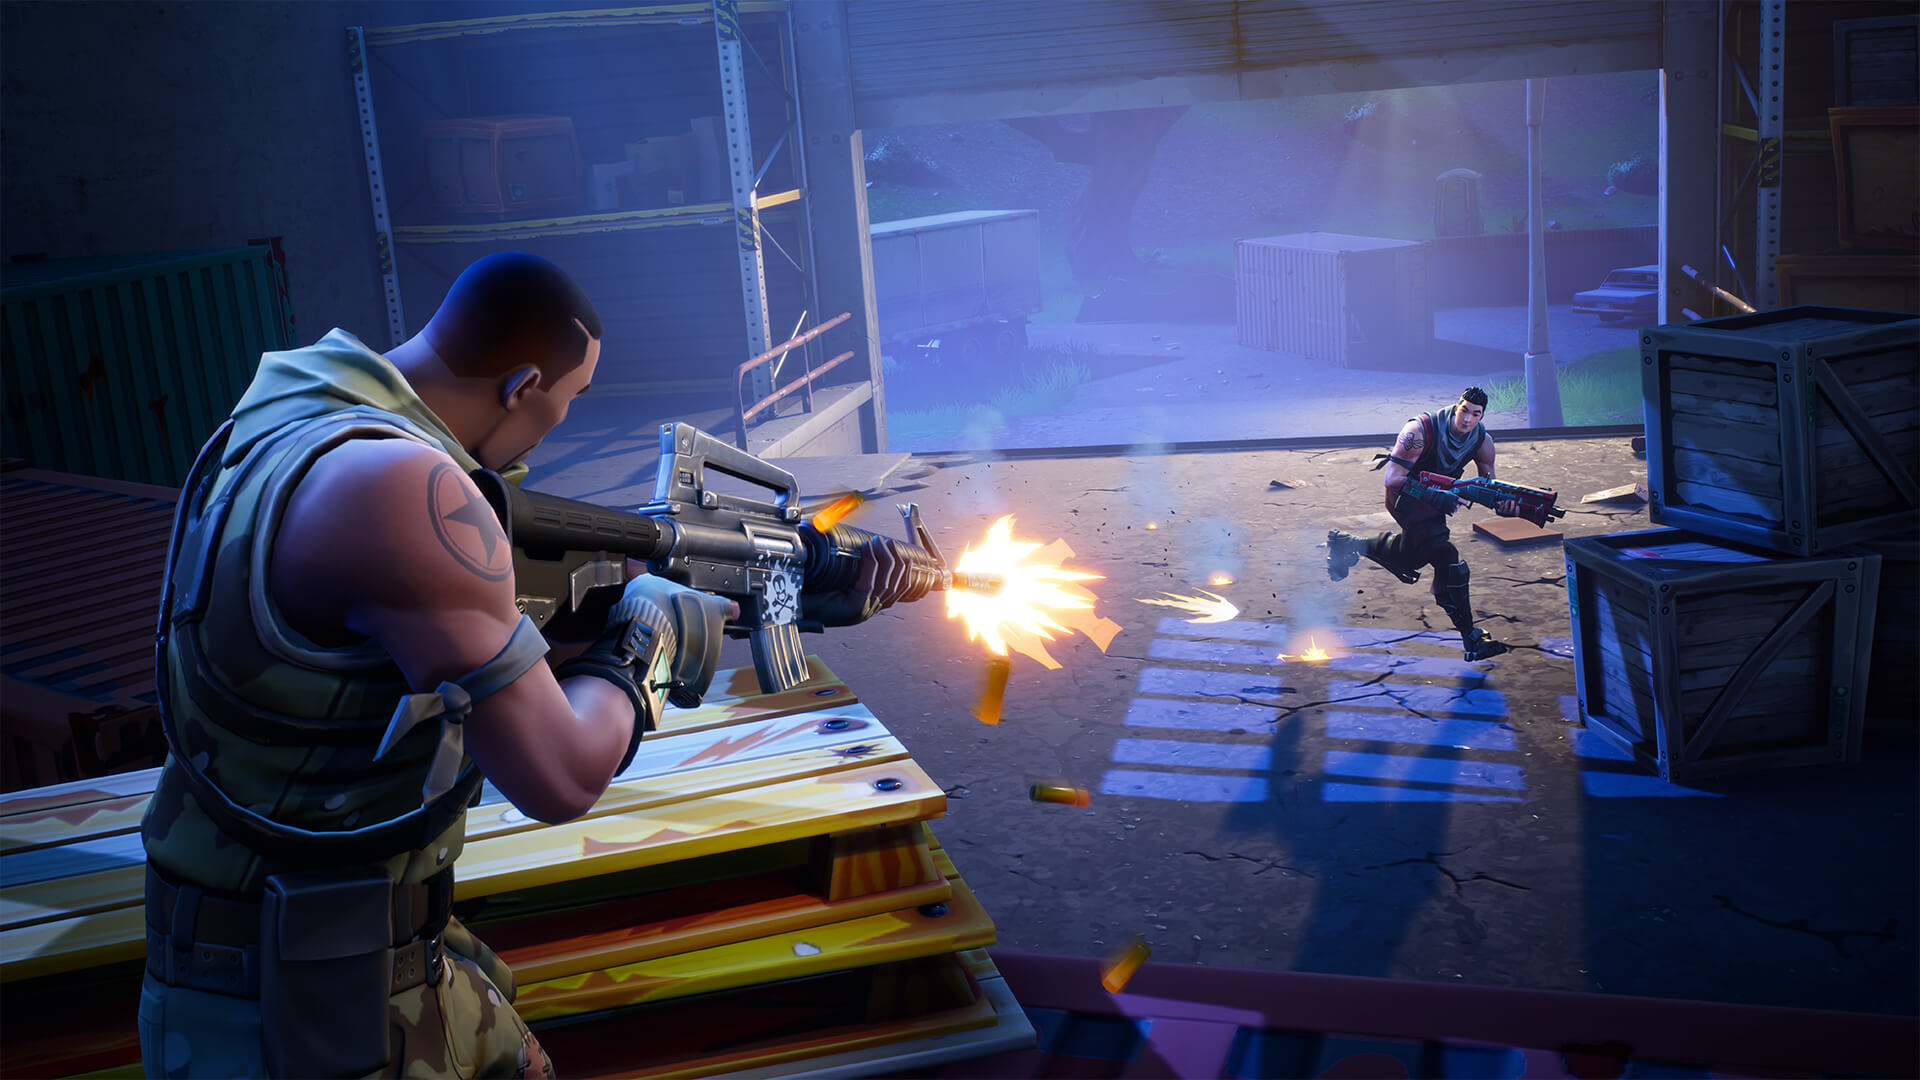 nintendo switch fortnite players will need to create a new epic games account if it s linked to a ps4 e3 2018 - e3 switch fortnite